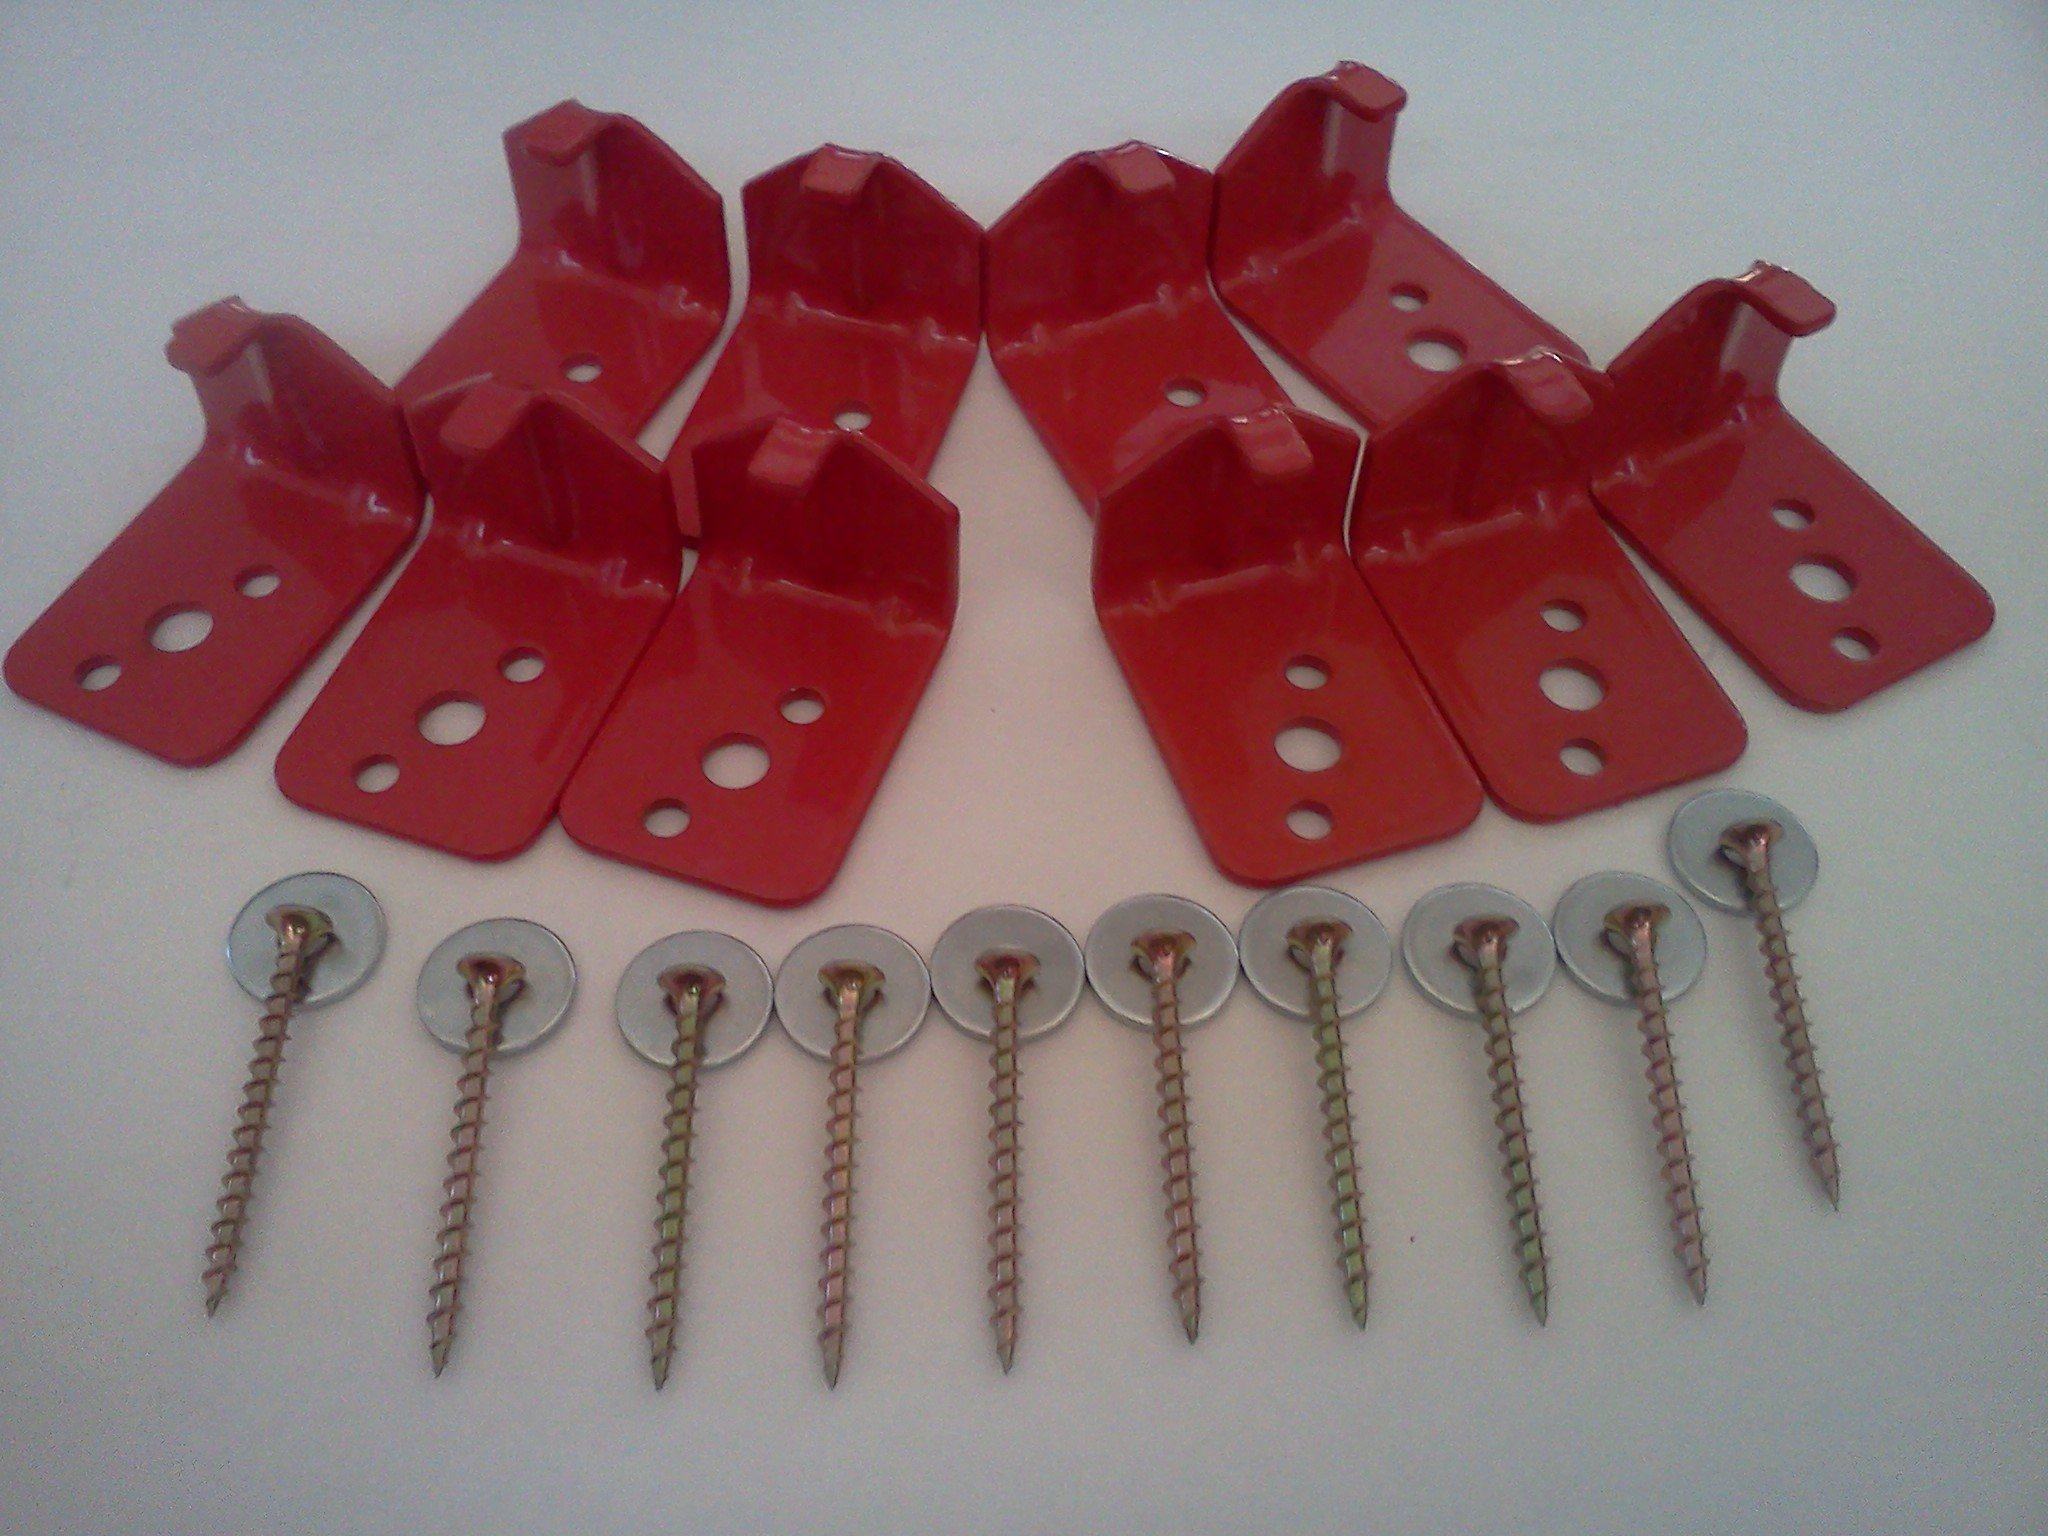 10 - Universal Fire Extinguisher Wall Hook, Mount, Bracket, Hanger for 5 Lb. Extinguisher - FREE SCREWS & WASHERS INCLUDED